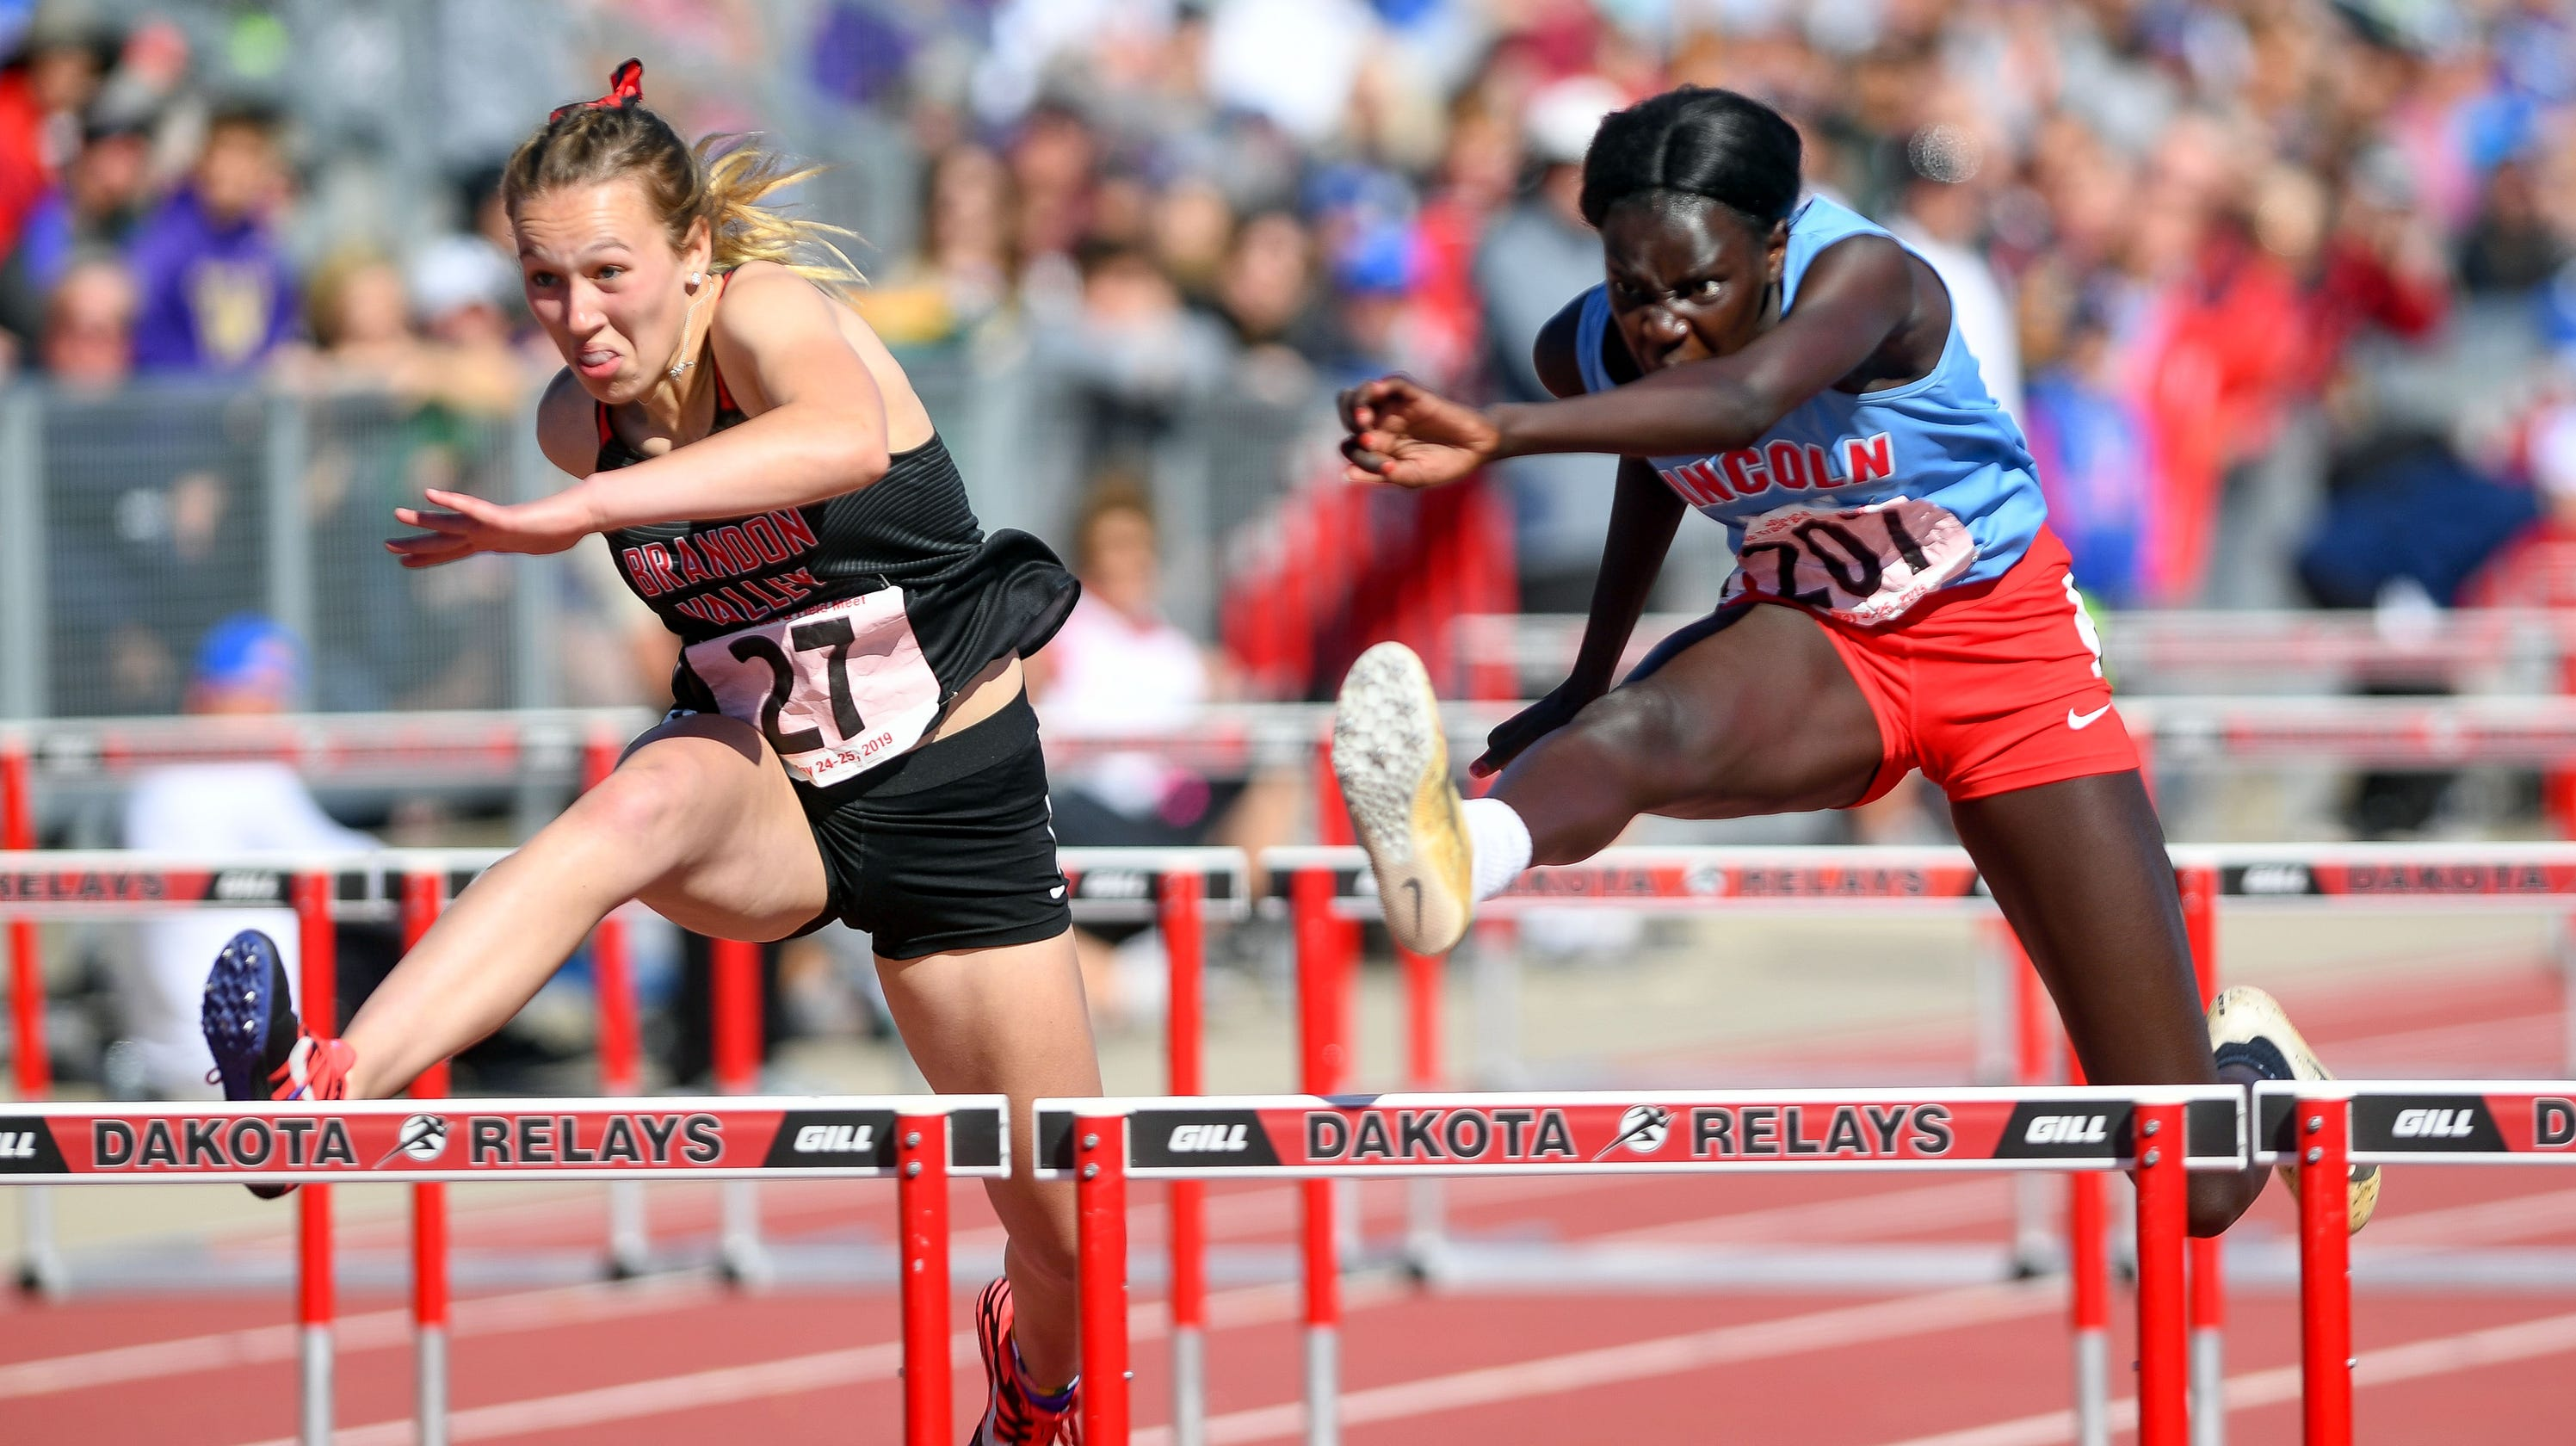 South Dakota High School State Track And Field Meet: Class